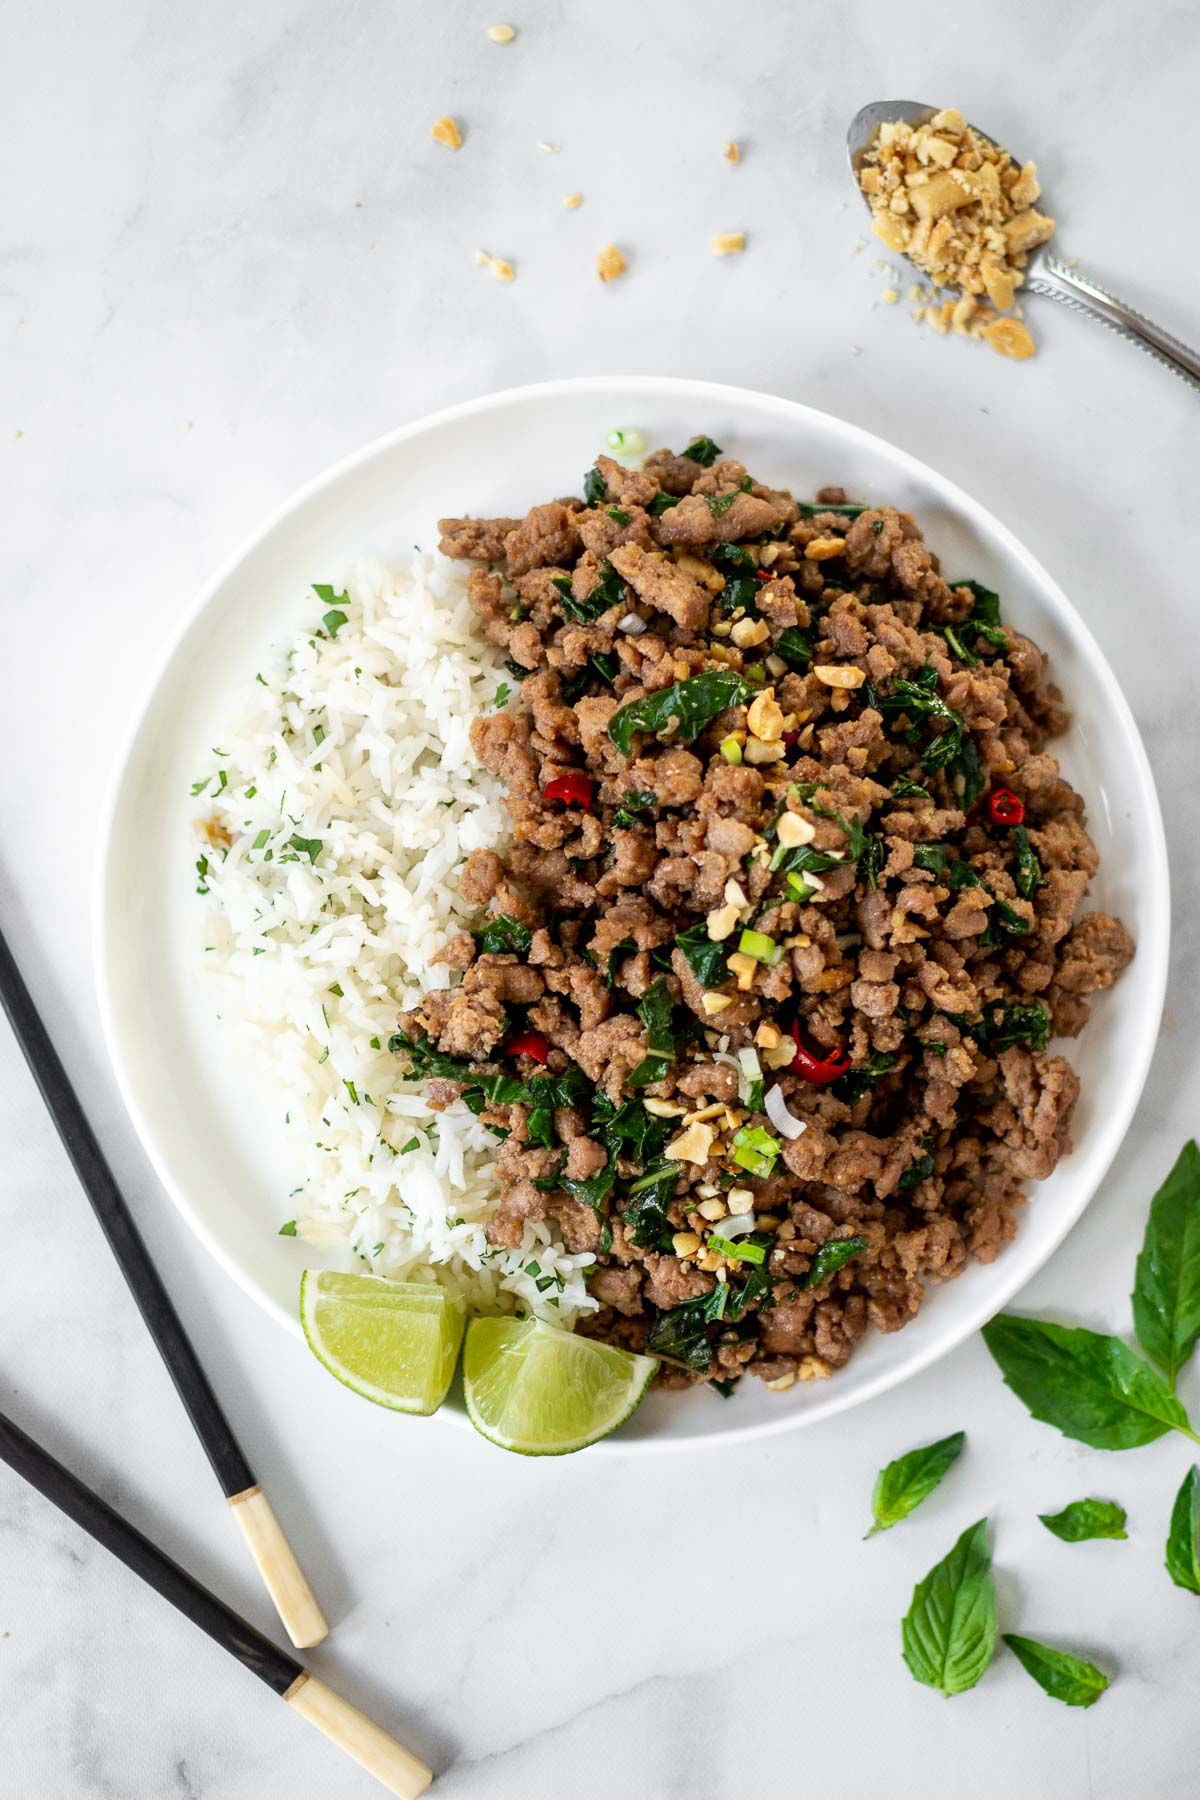 Basil pork dish on a plate with rice and peanuts.